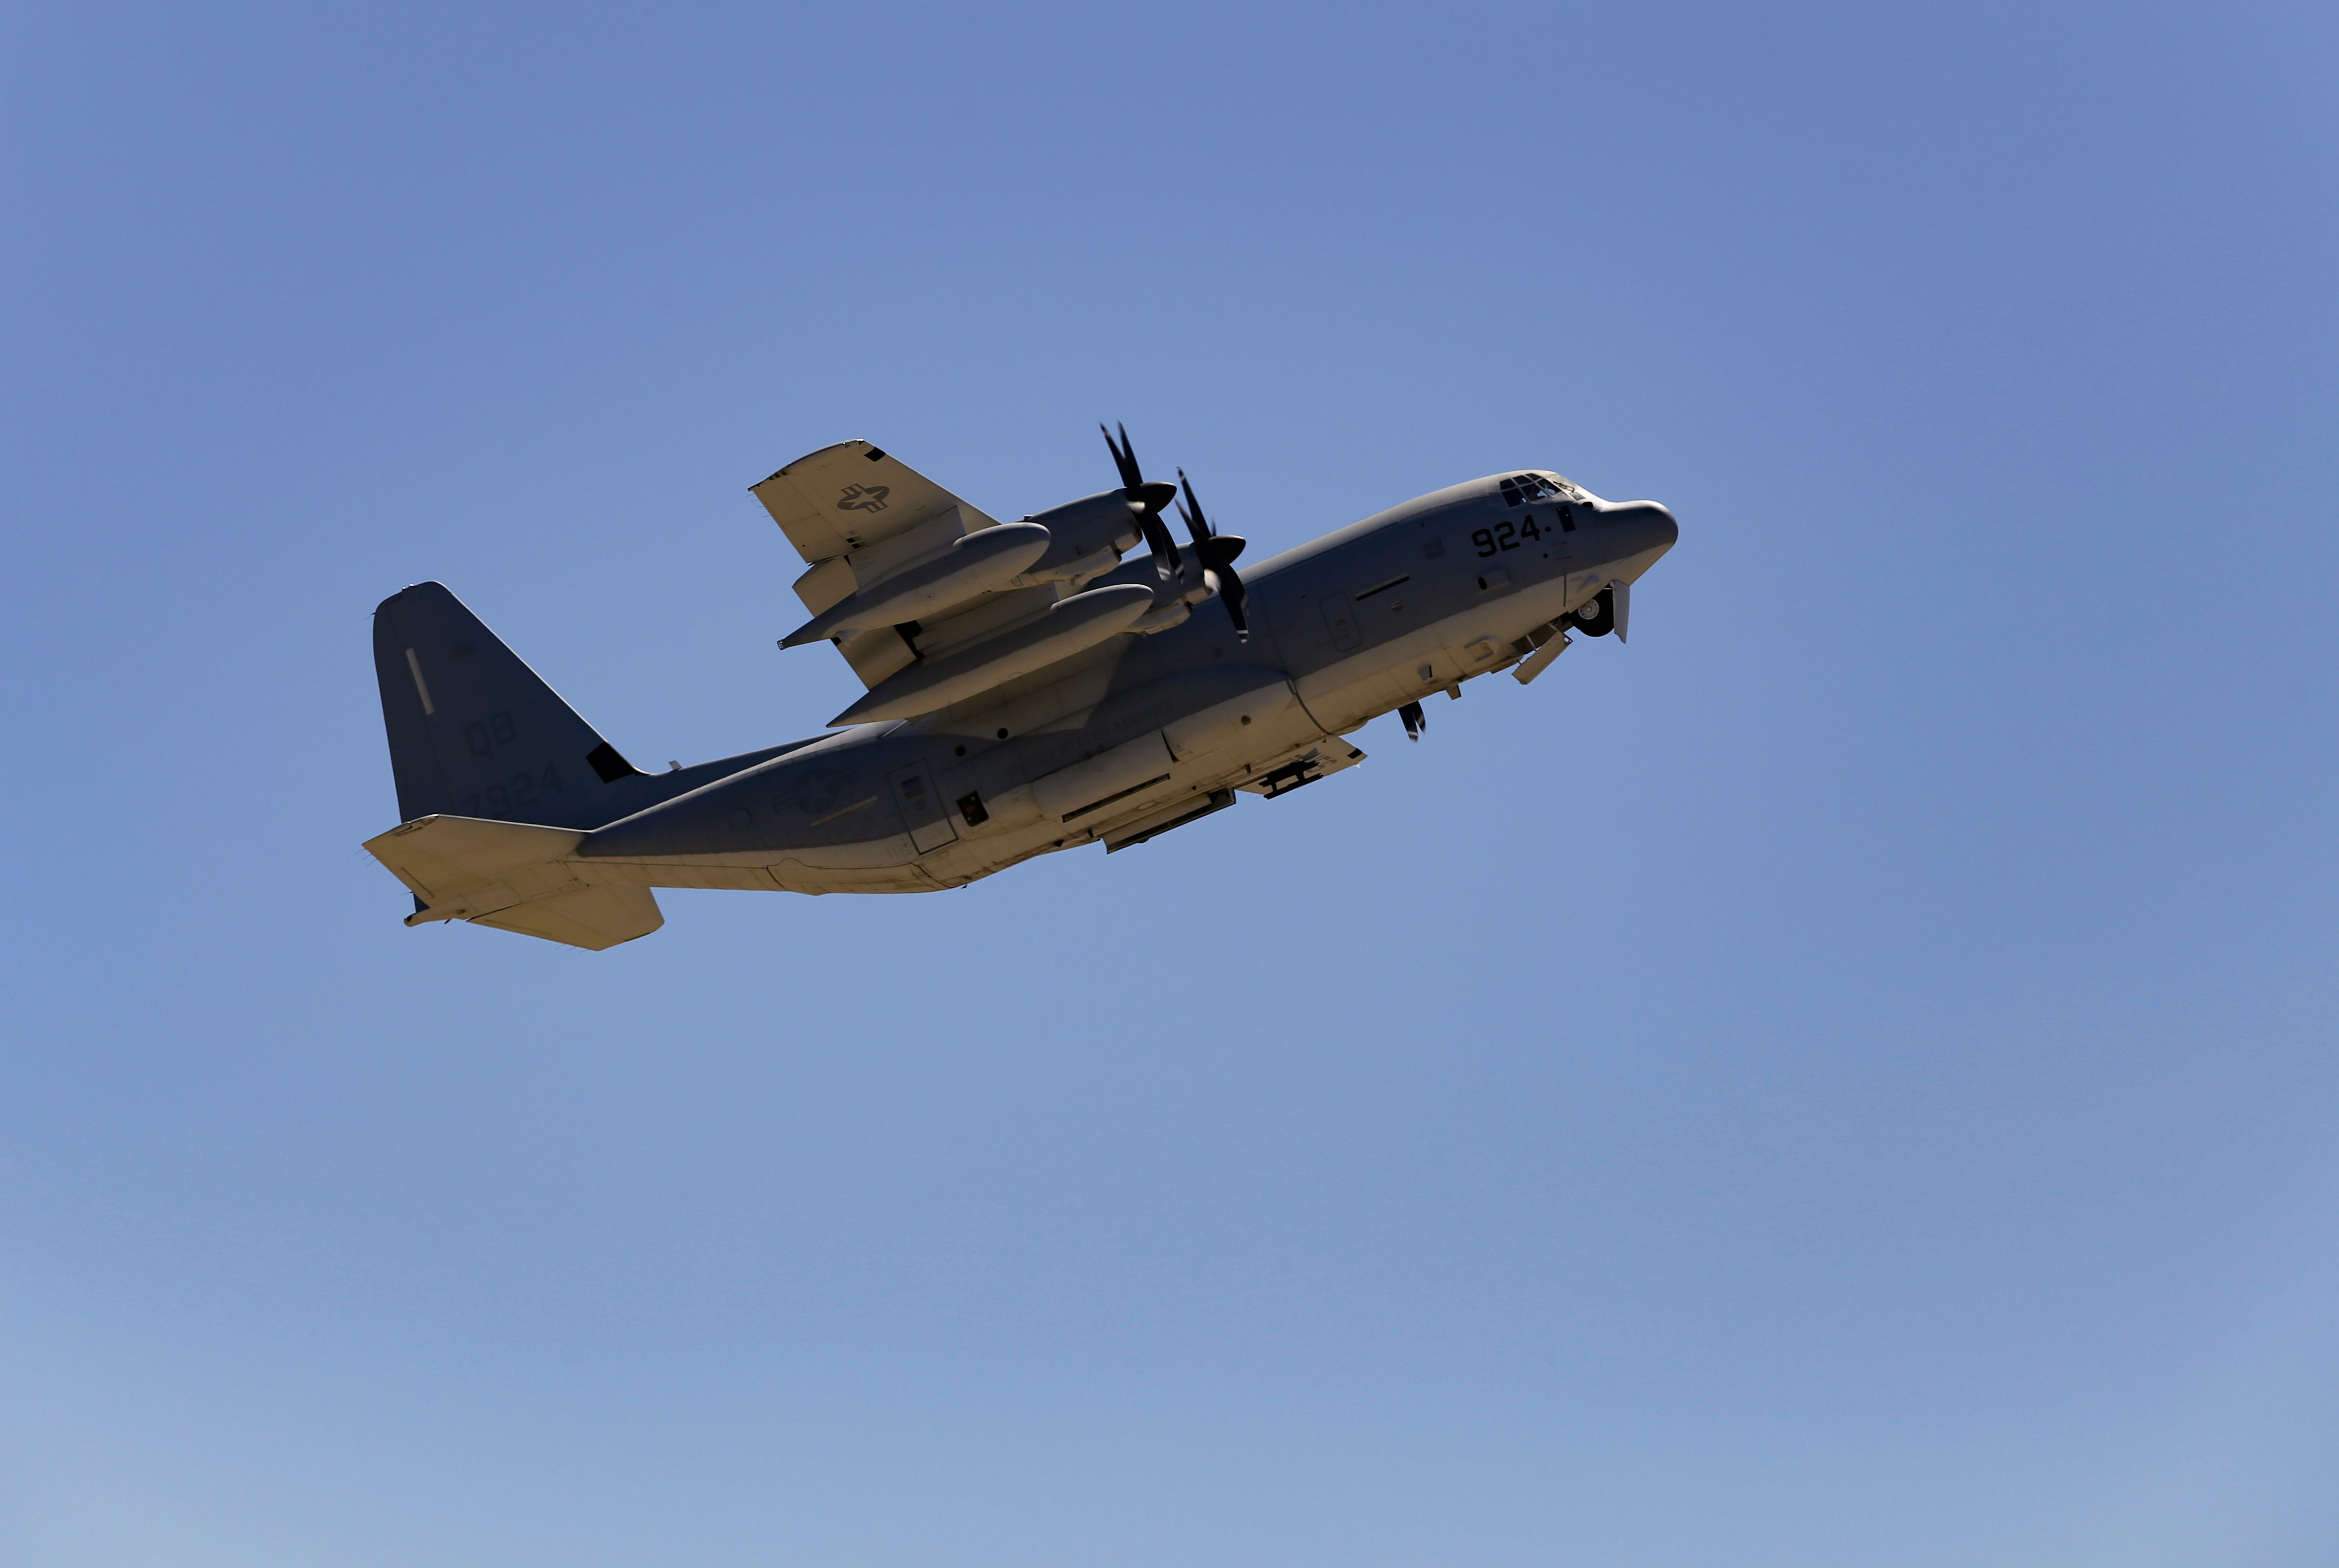 photo of climb out of C-130